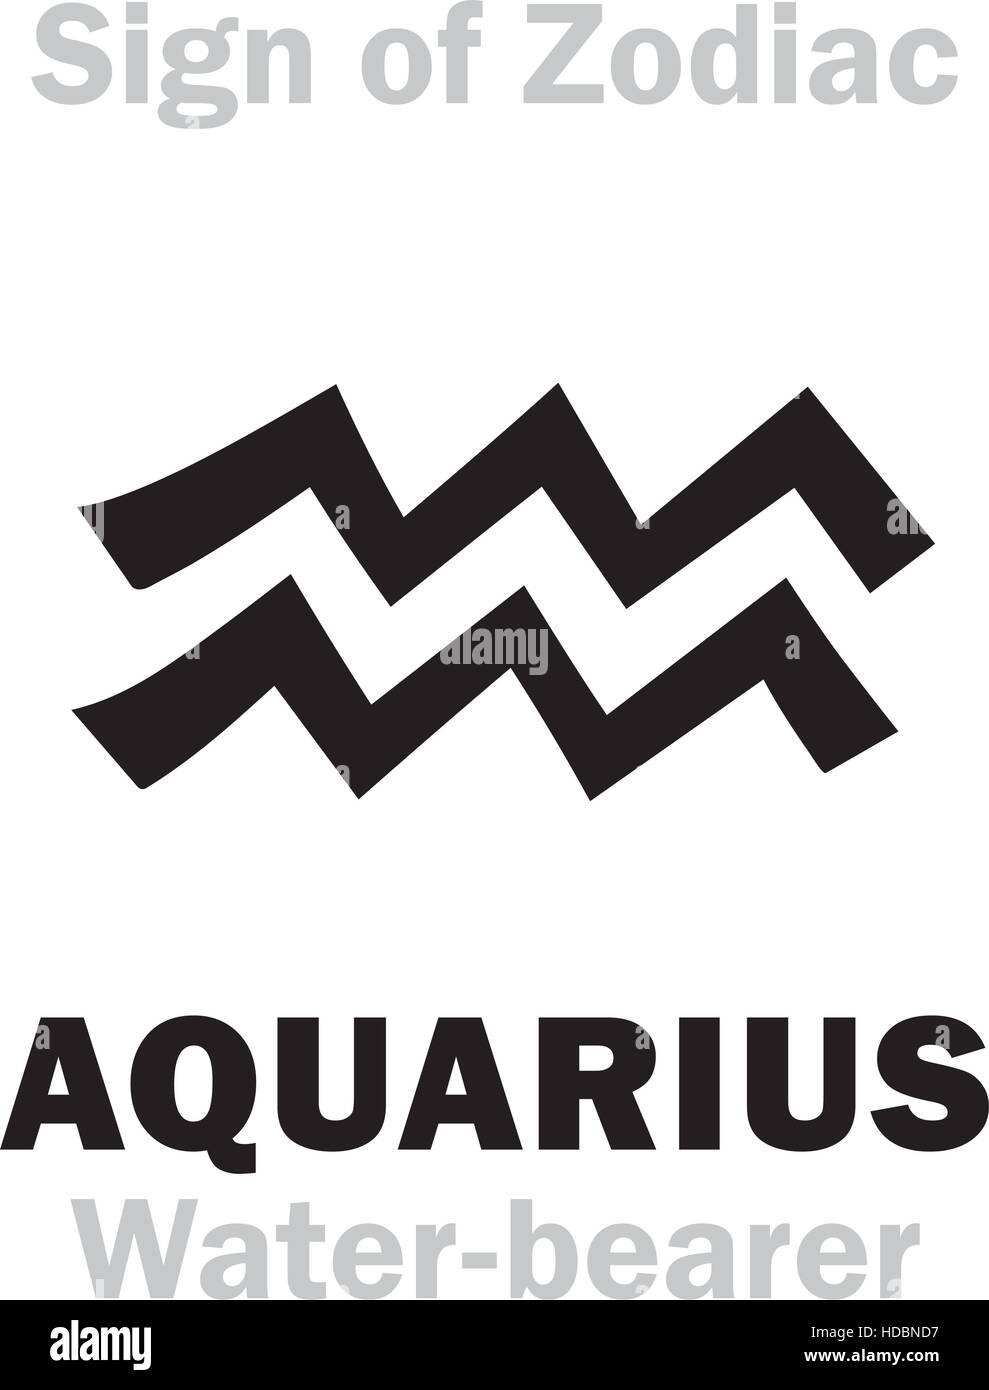 Astrology alphabet sign of zodiac aquarius the water bearer astrology alphabet sign of zodiac aquarius the water bearer hieroglyphics character sign single symbol biocorpaavc Image collections